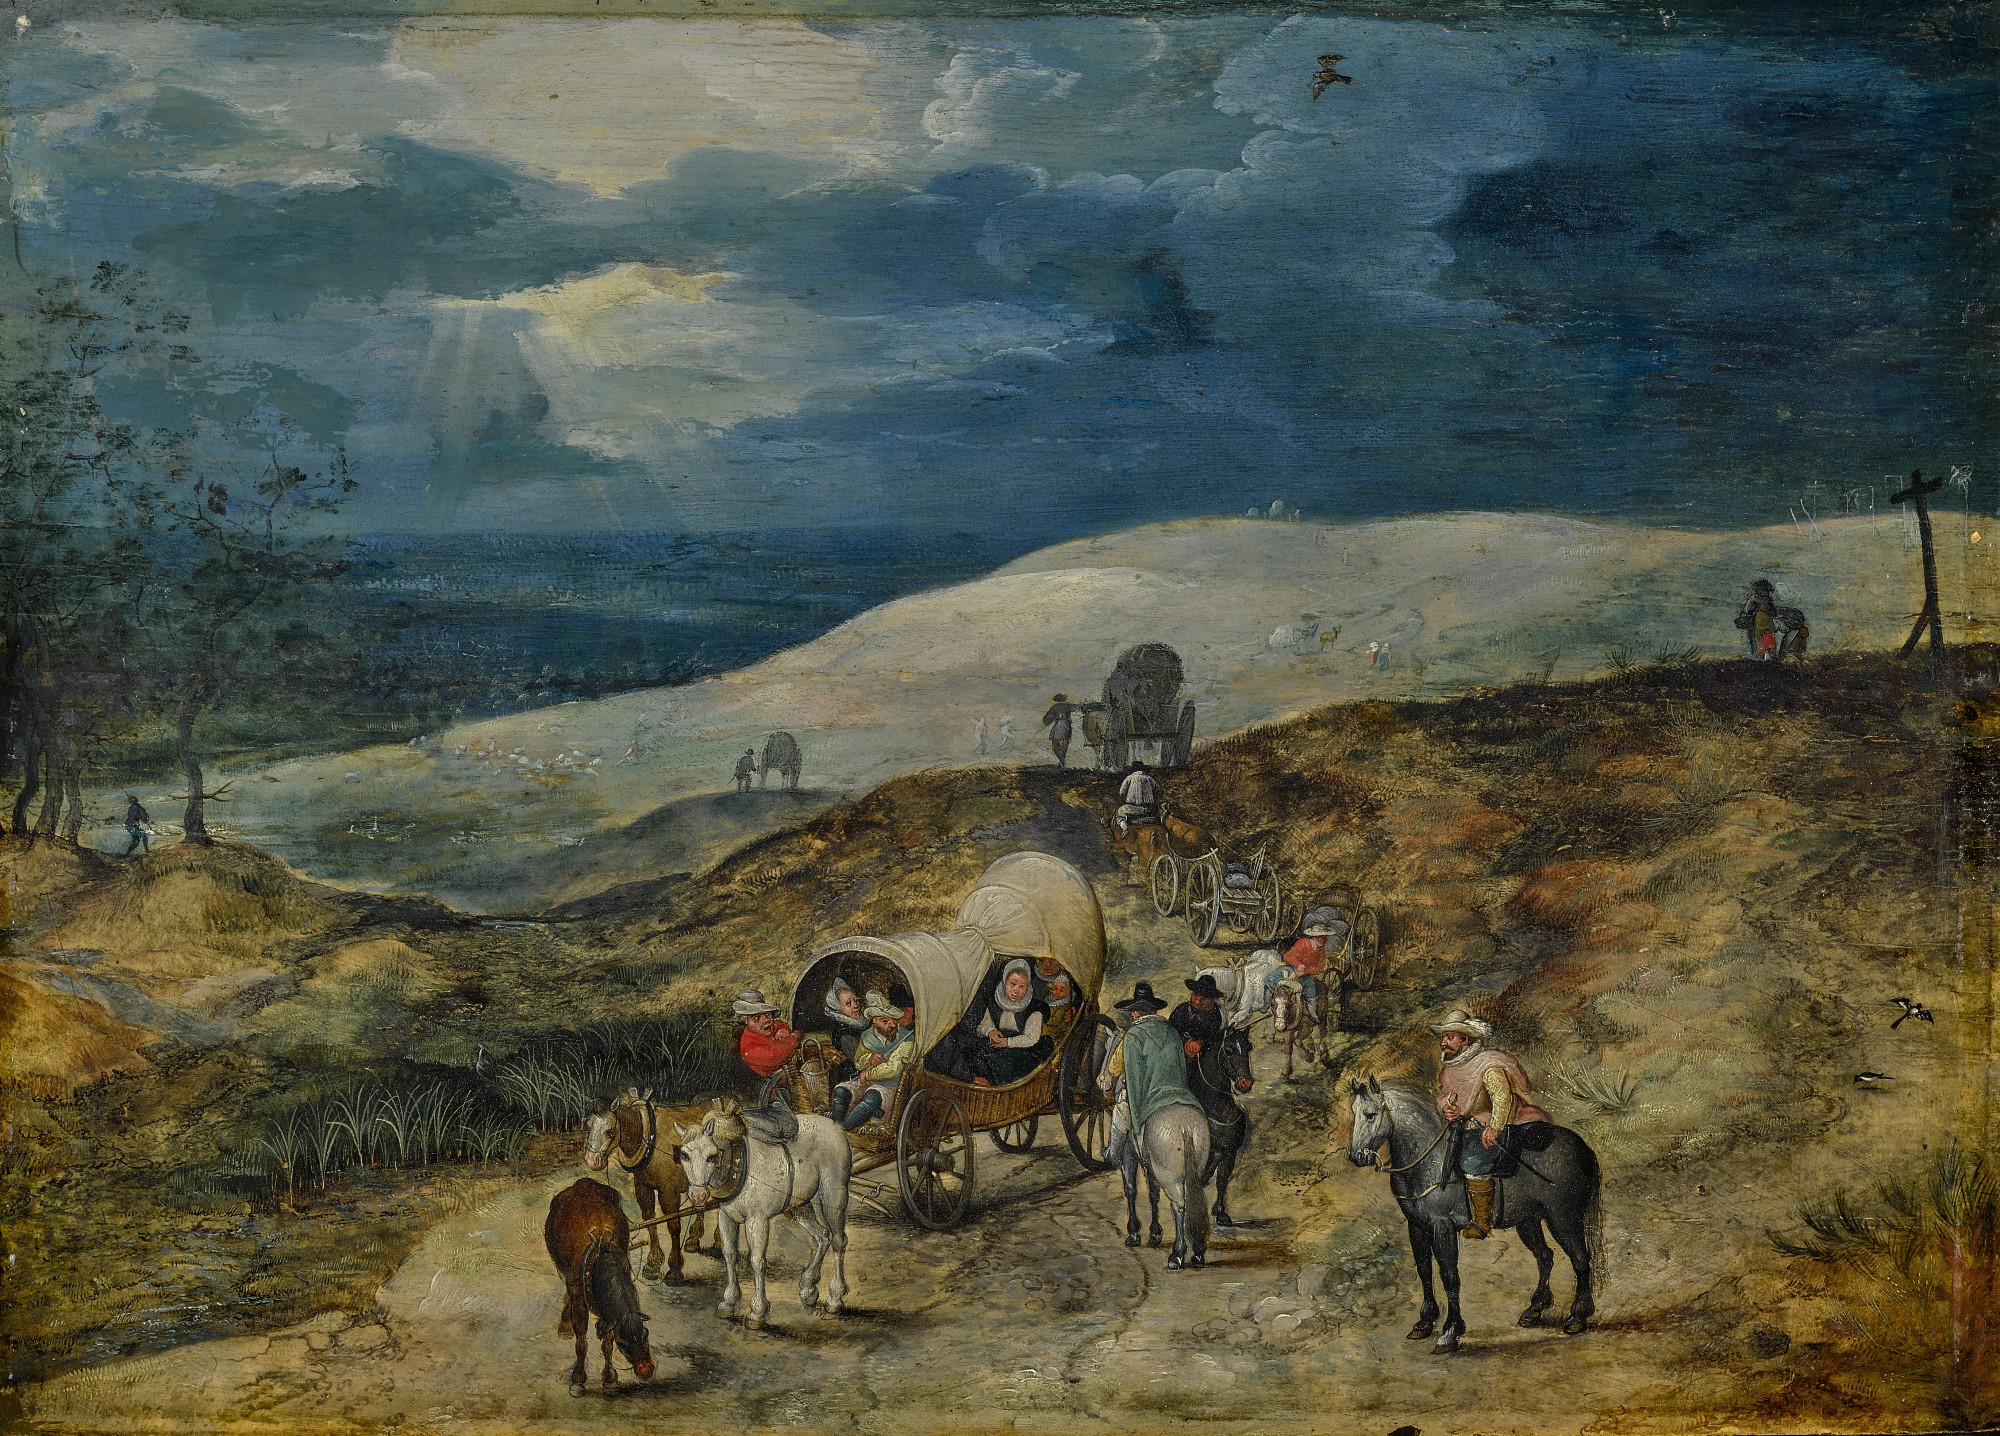 ATTRIBUTED TO JAN BREUGHEL THE YOUNGER (Antwerp 1601 - 1678) -  A LANDSCAPE WITH TRAVELERS BEING ROBBED